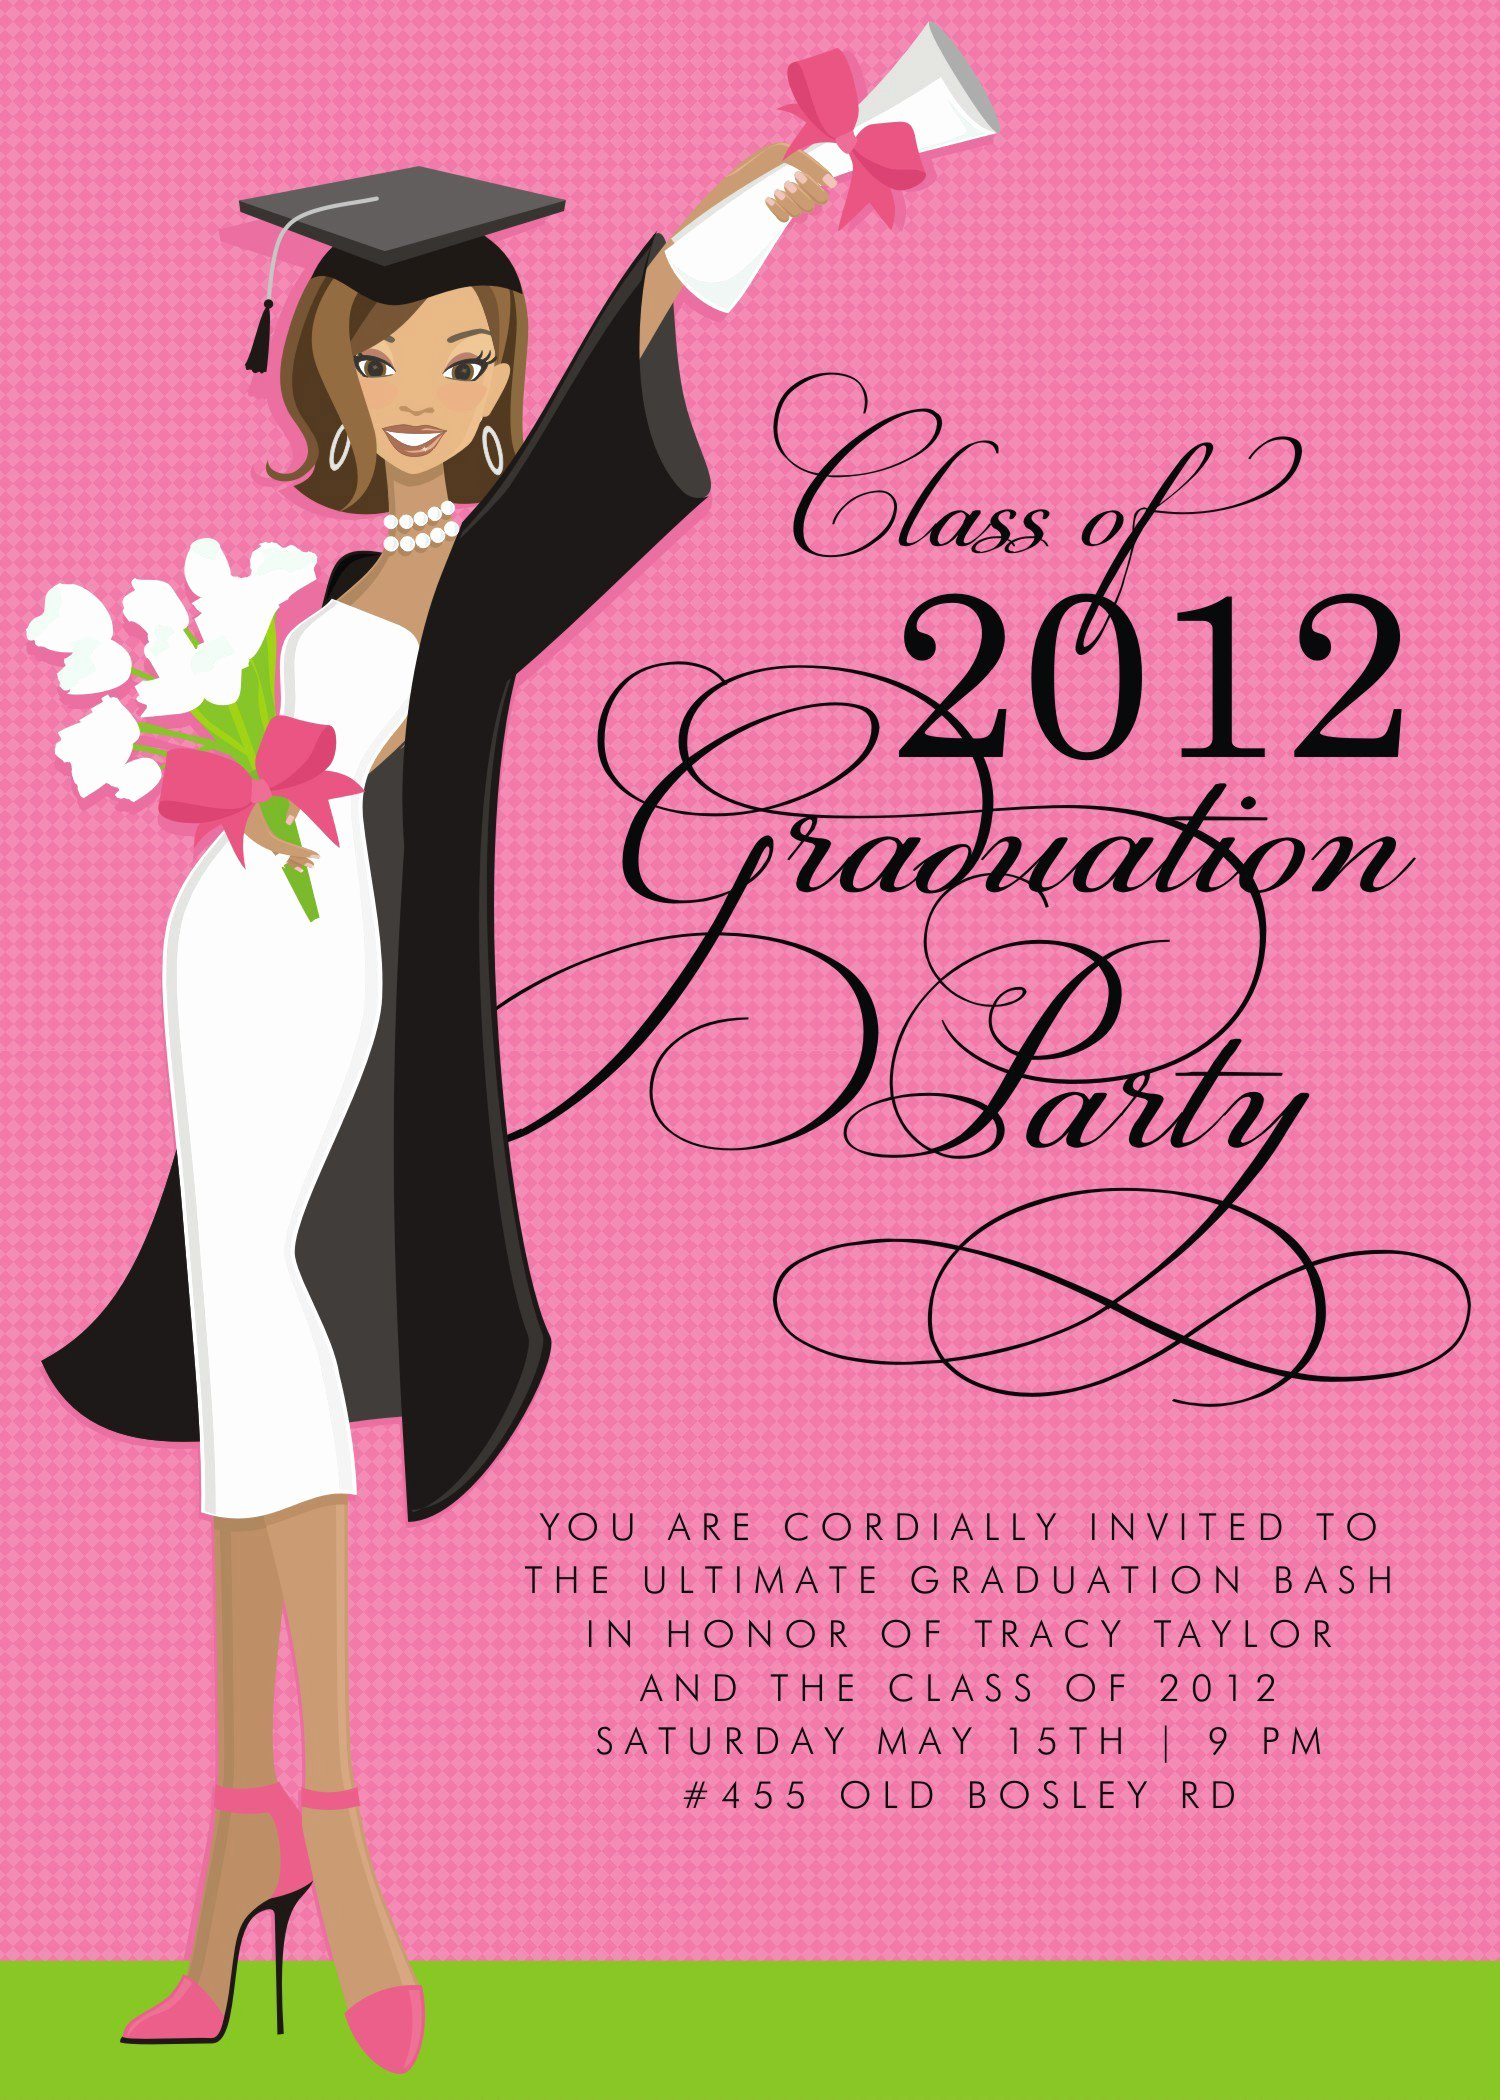 Free Graduation Announcements Templates Beautiful Free Graduation Invitation Templates Free Graduation